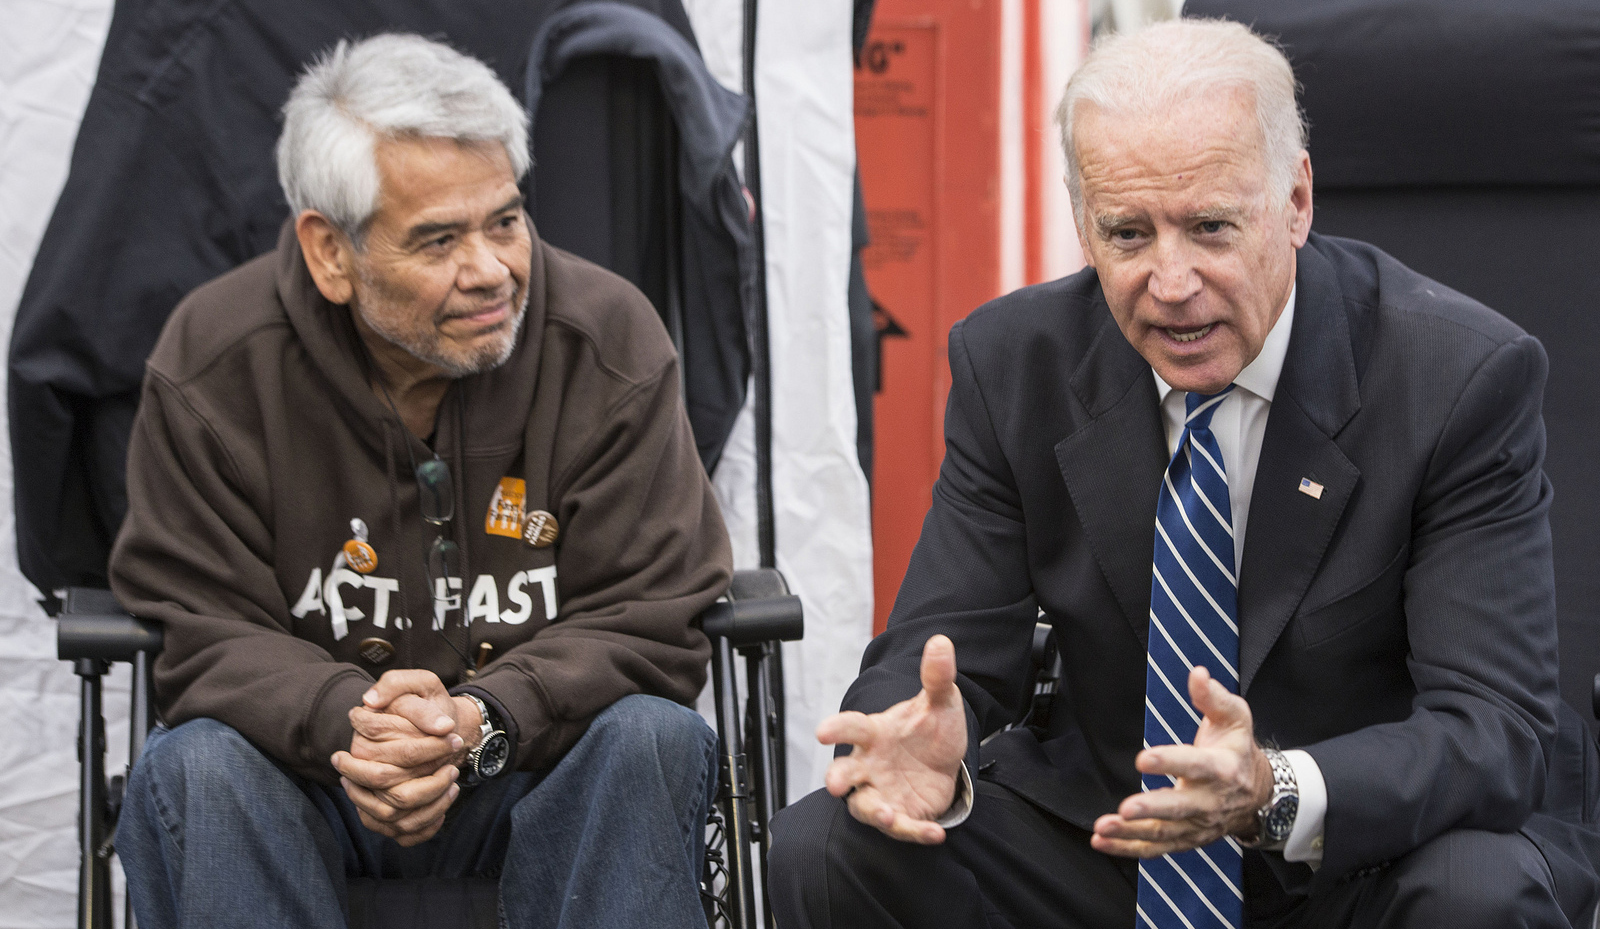 Vice President Joe Biden chats with Eliseo Medina, Secretary-Treasurer of the Service Employees International Union, at the Fast for Families protest of immigration reform.